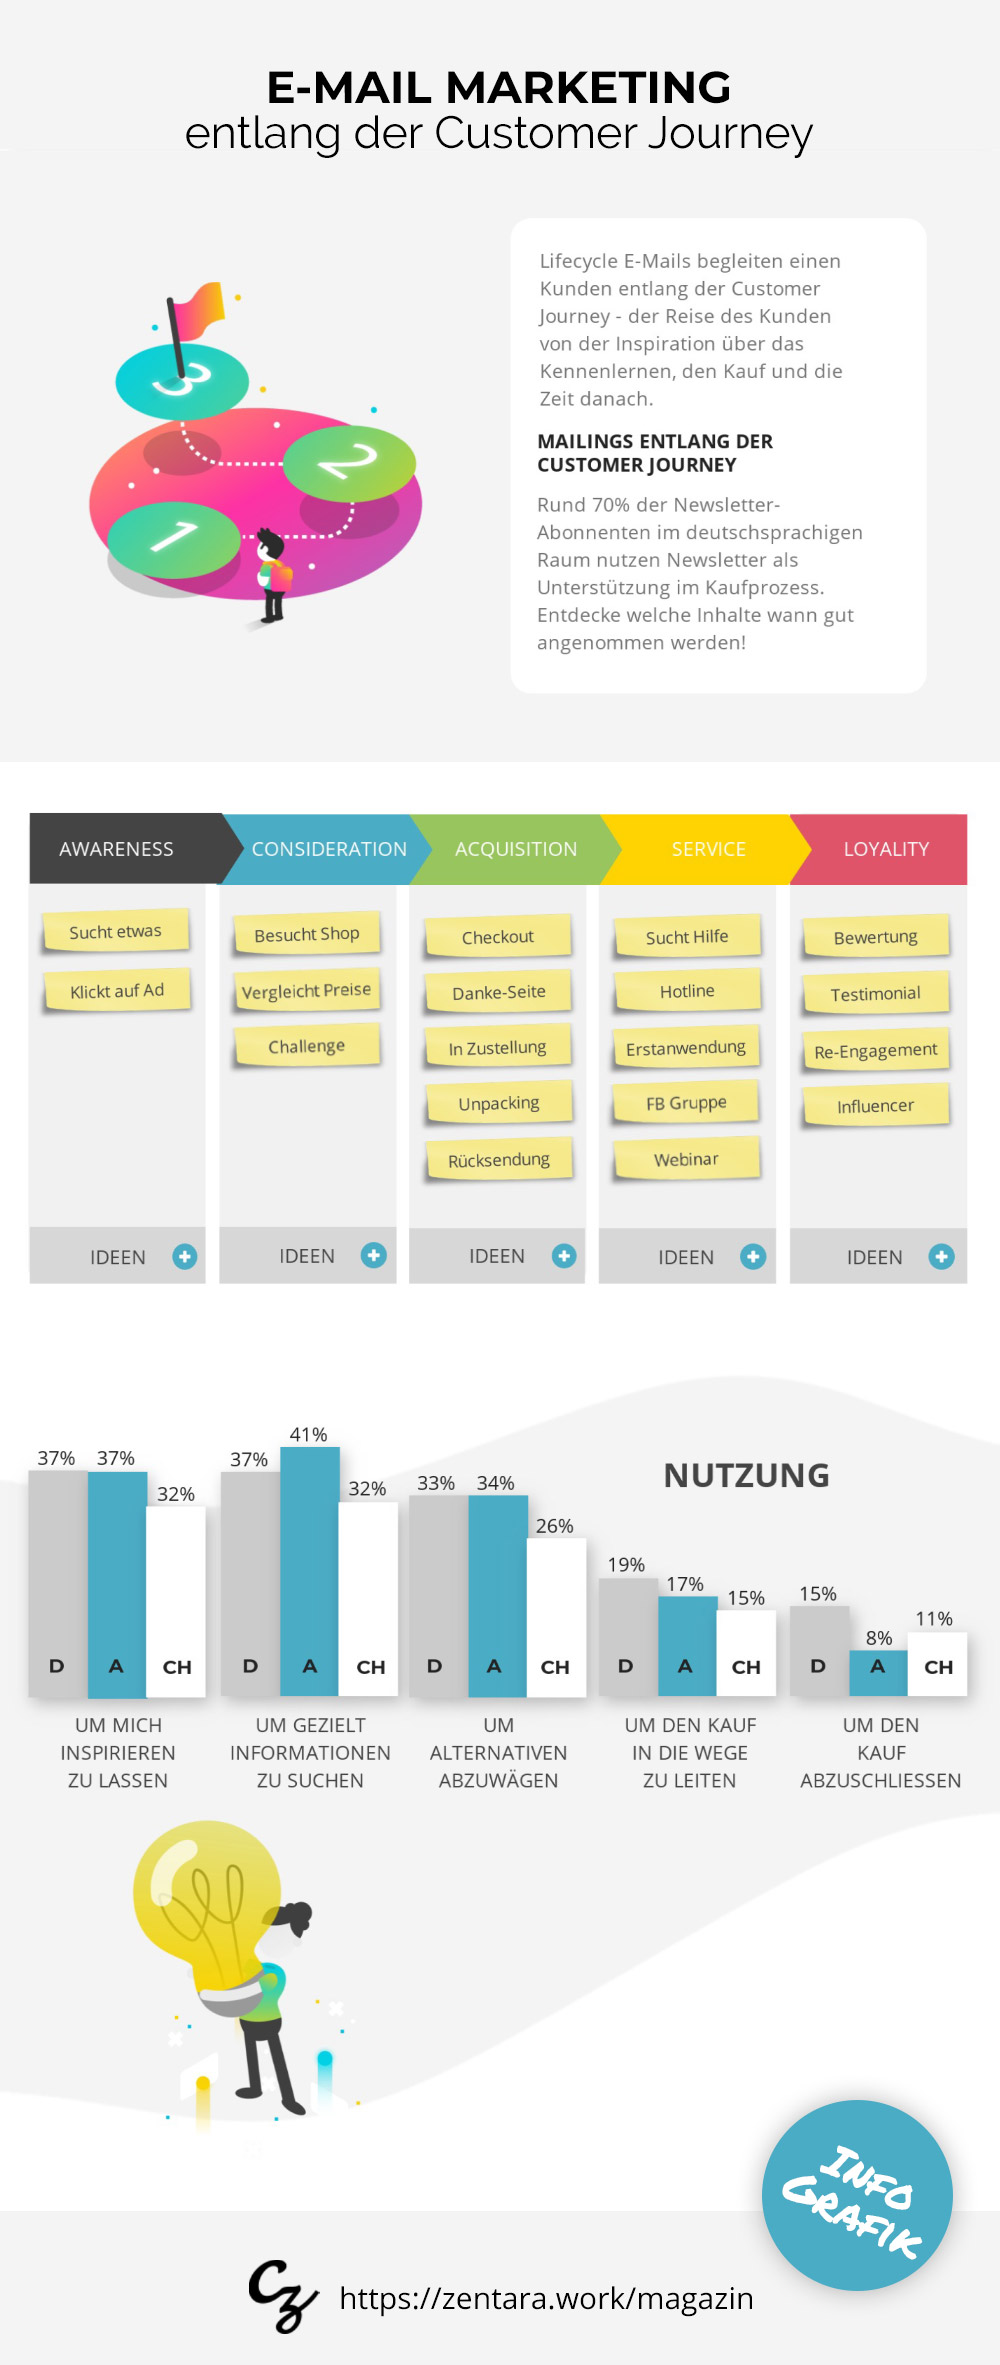 E-Mail Marketing entlang der Customer Journey [Infografik]